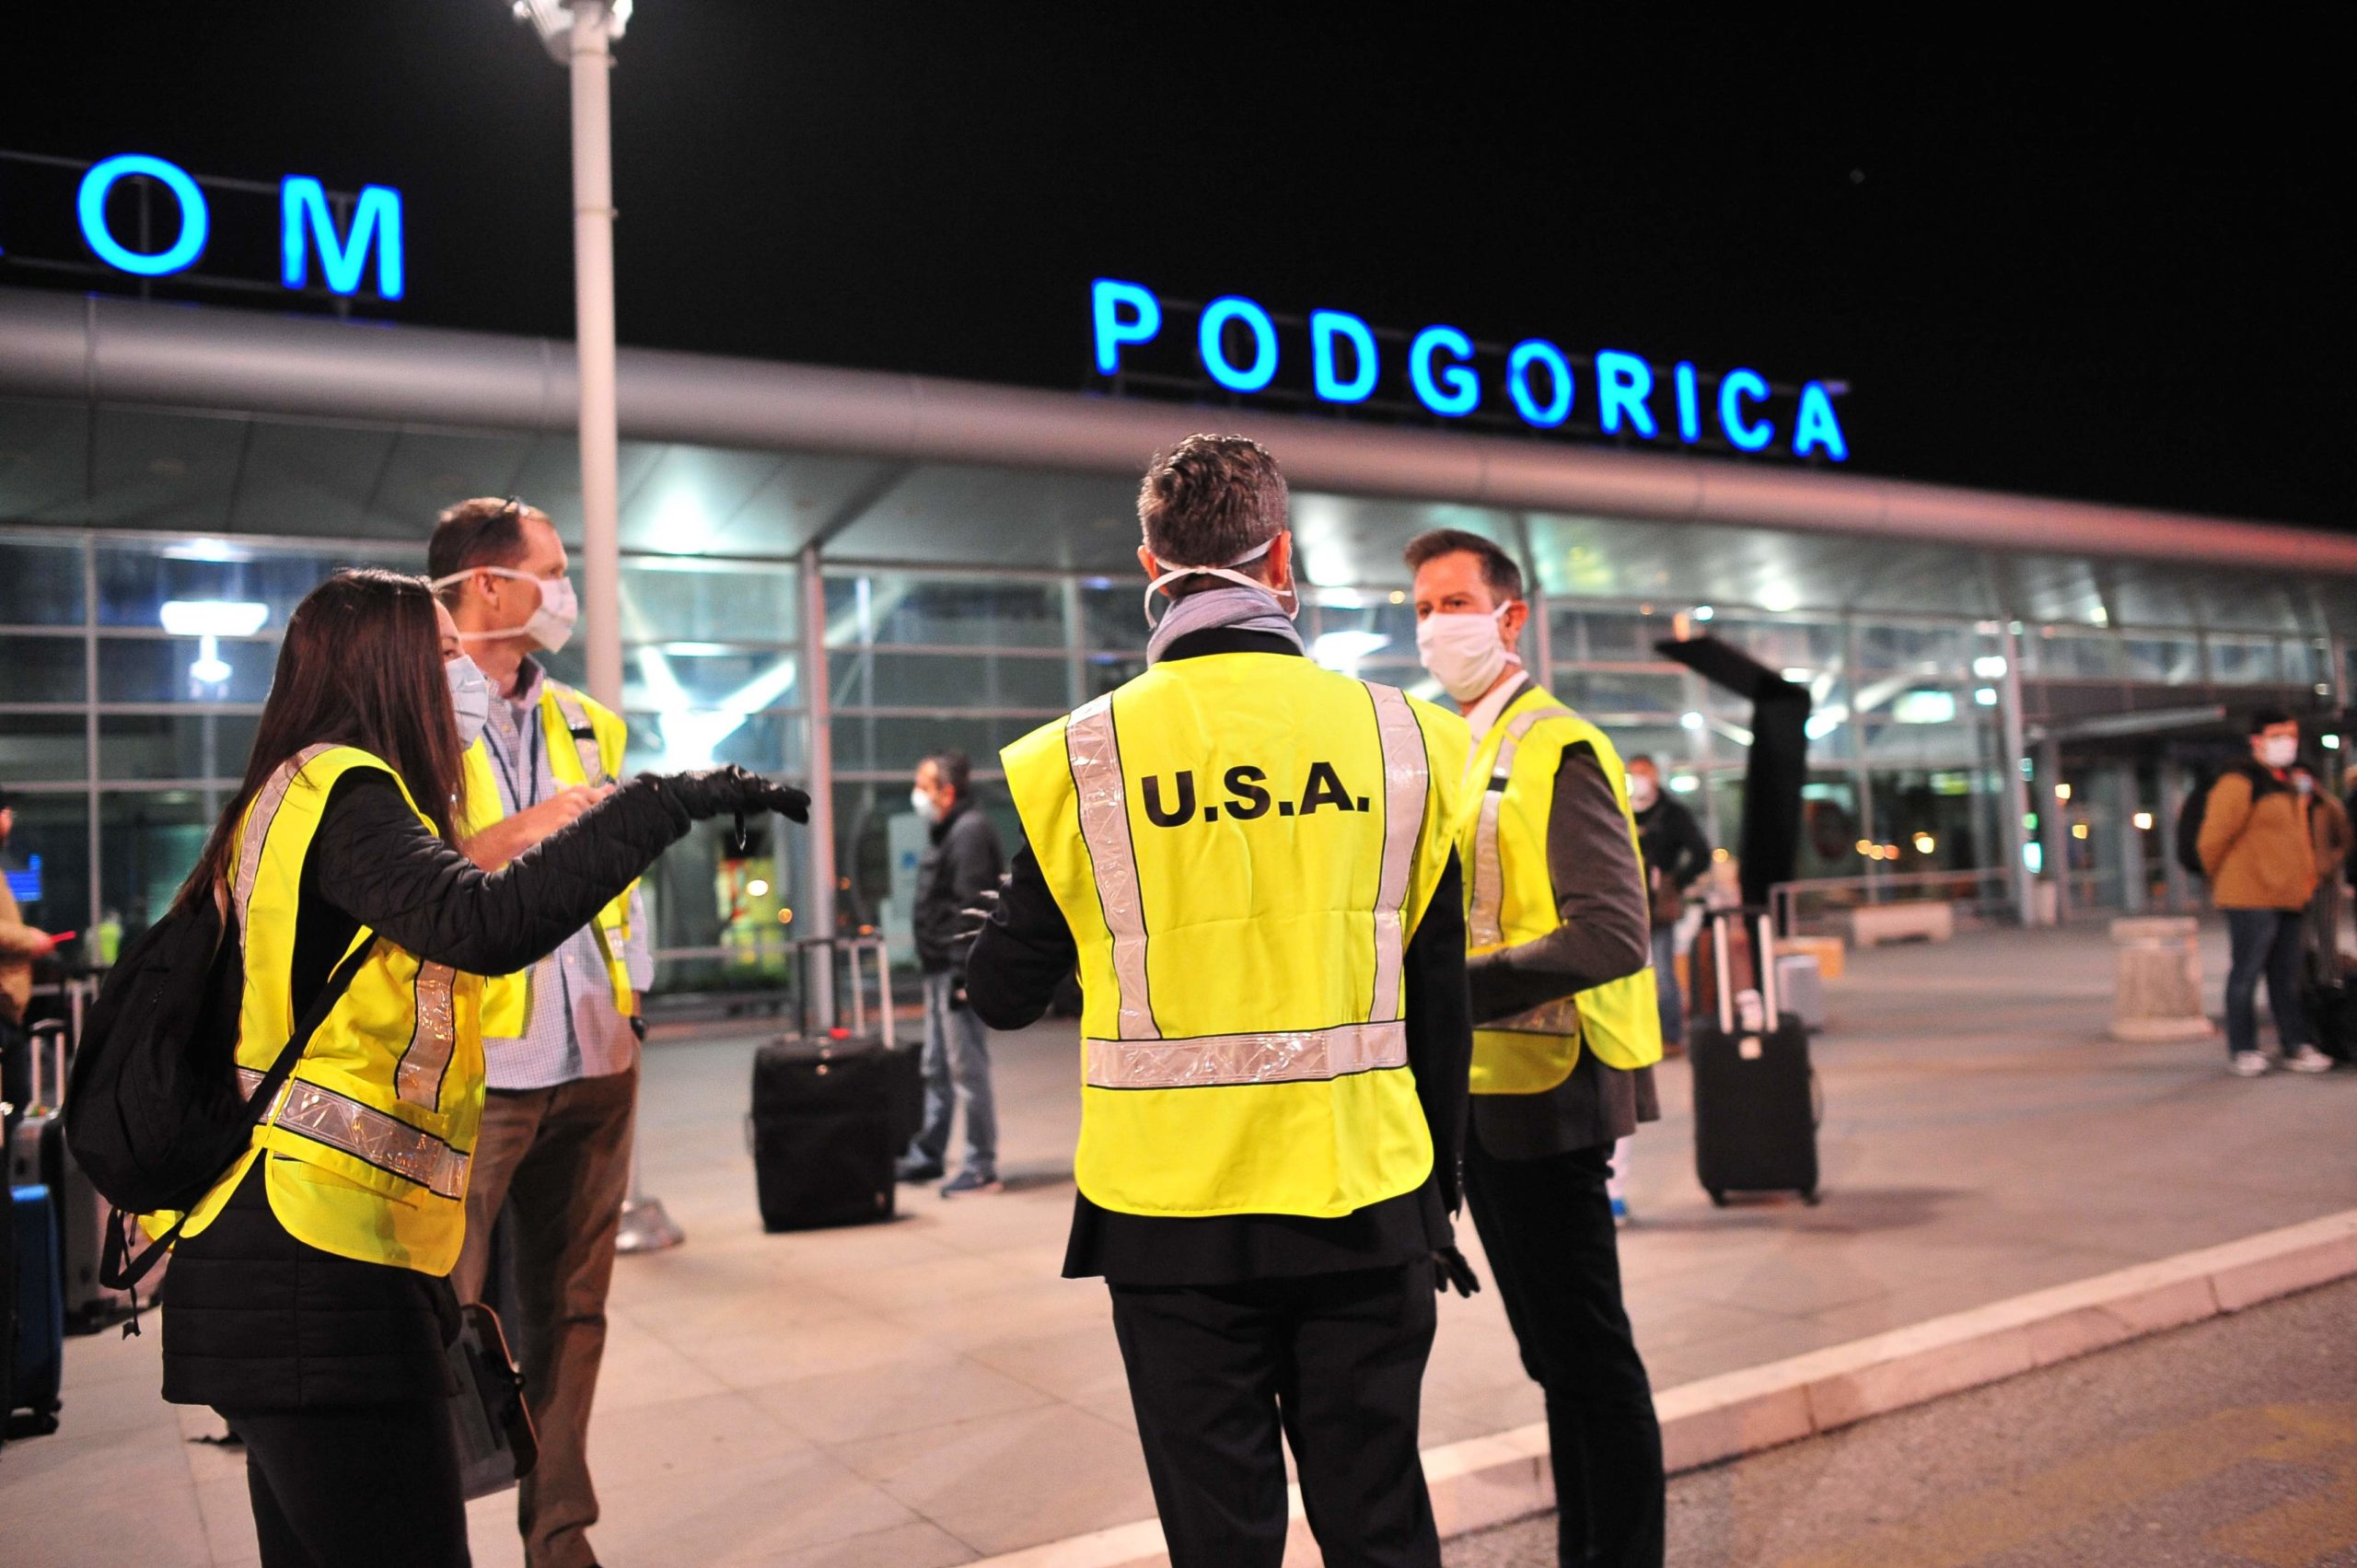 Staff of U.S. Embassy Podgorica gather outside the airport to assist in the return of U.S. citizens home from Montenegro.